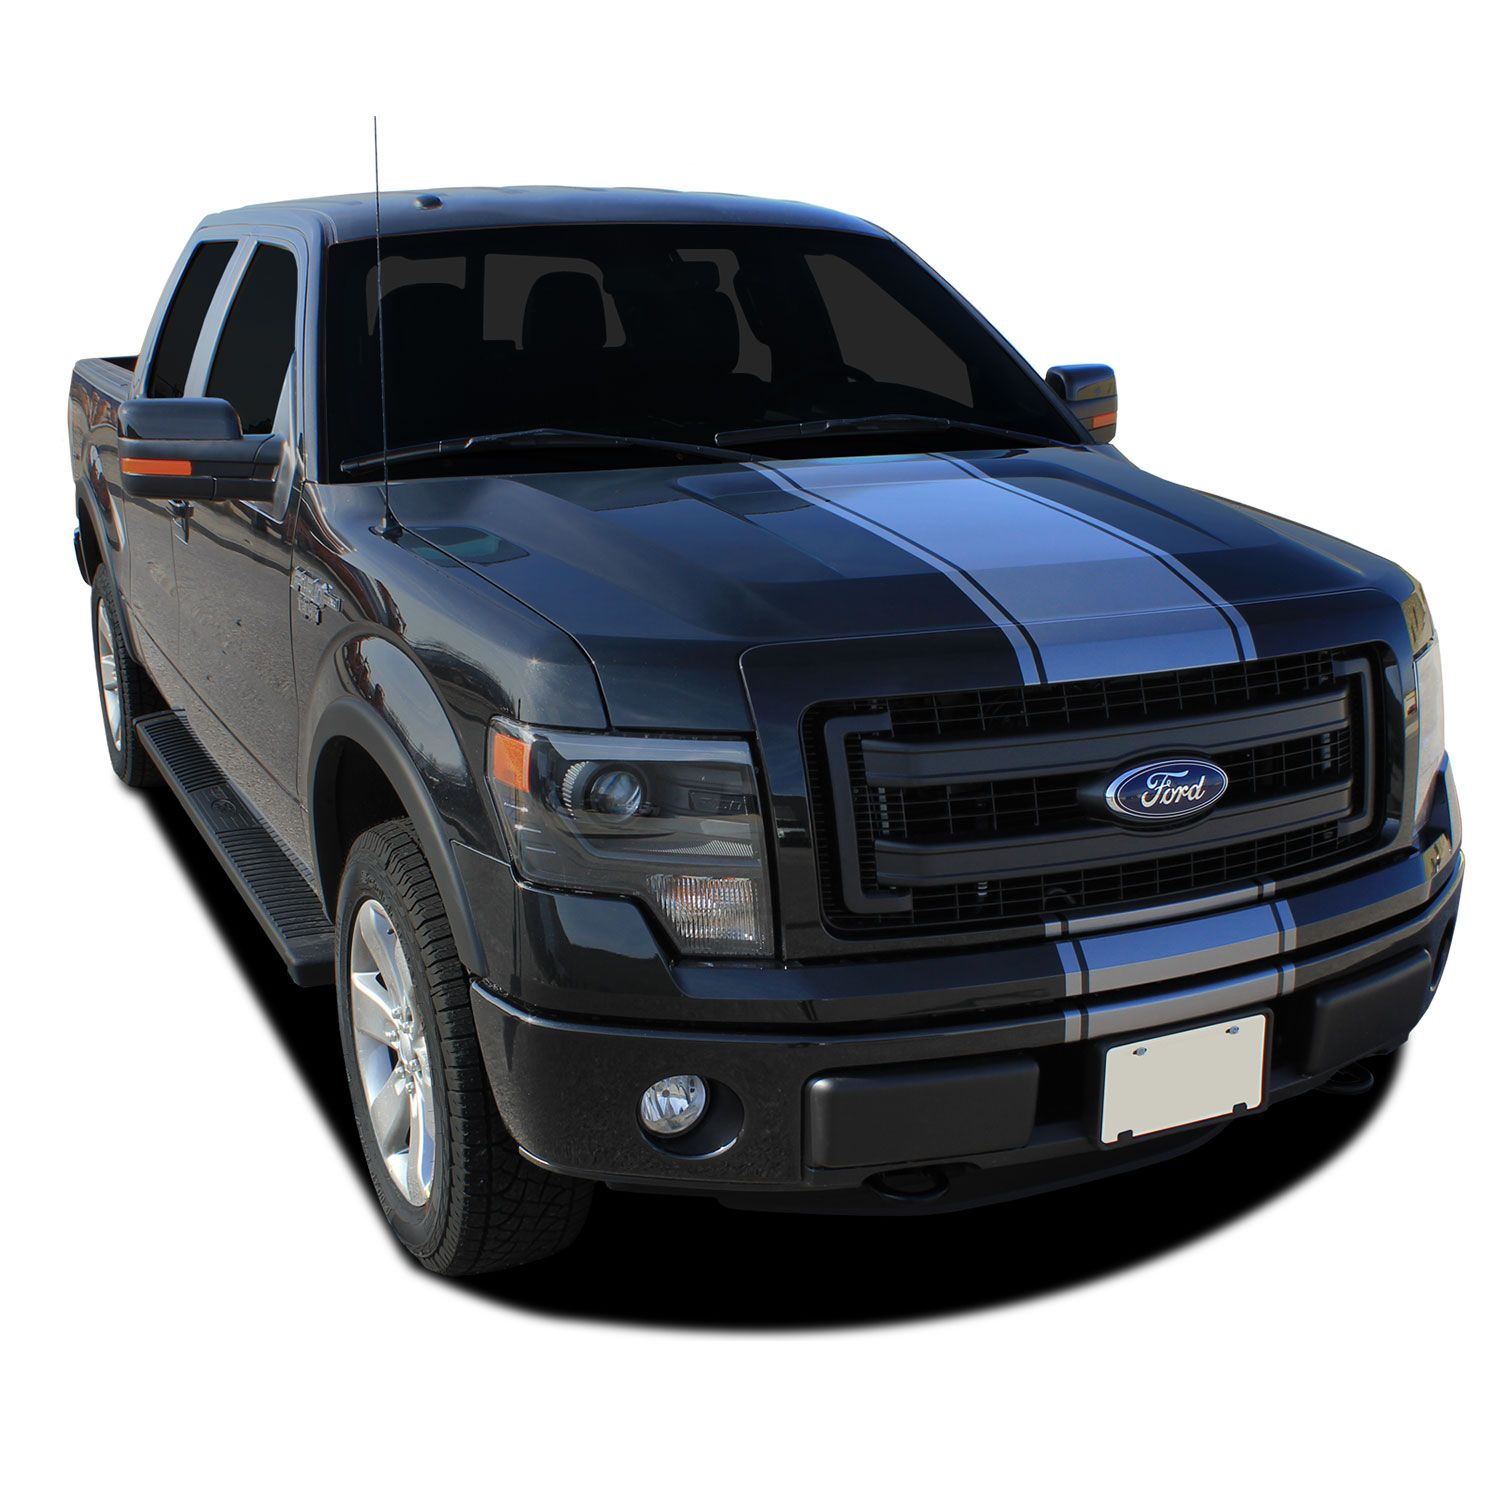 F150 Hood Blackout Vinyl Decal 2009 2010 2011 2012 2013 2014 Style 1 Ford F-15